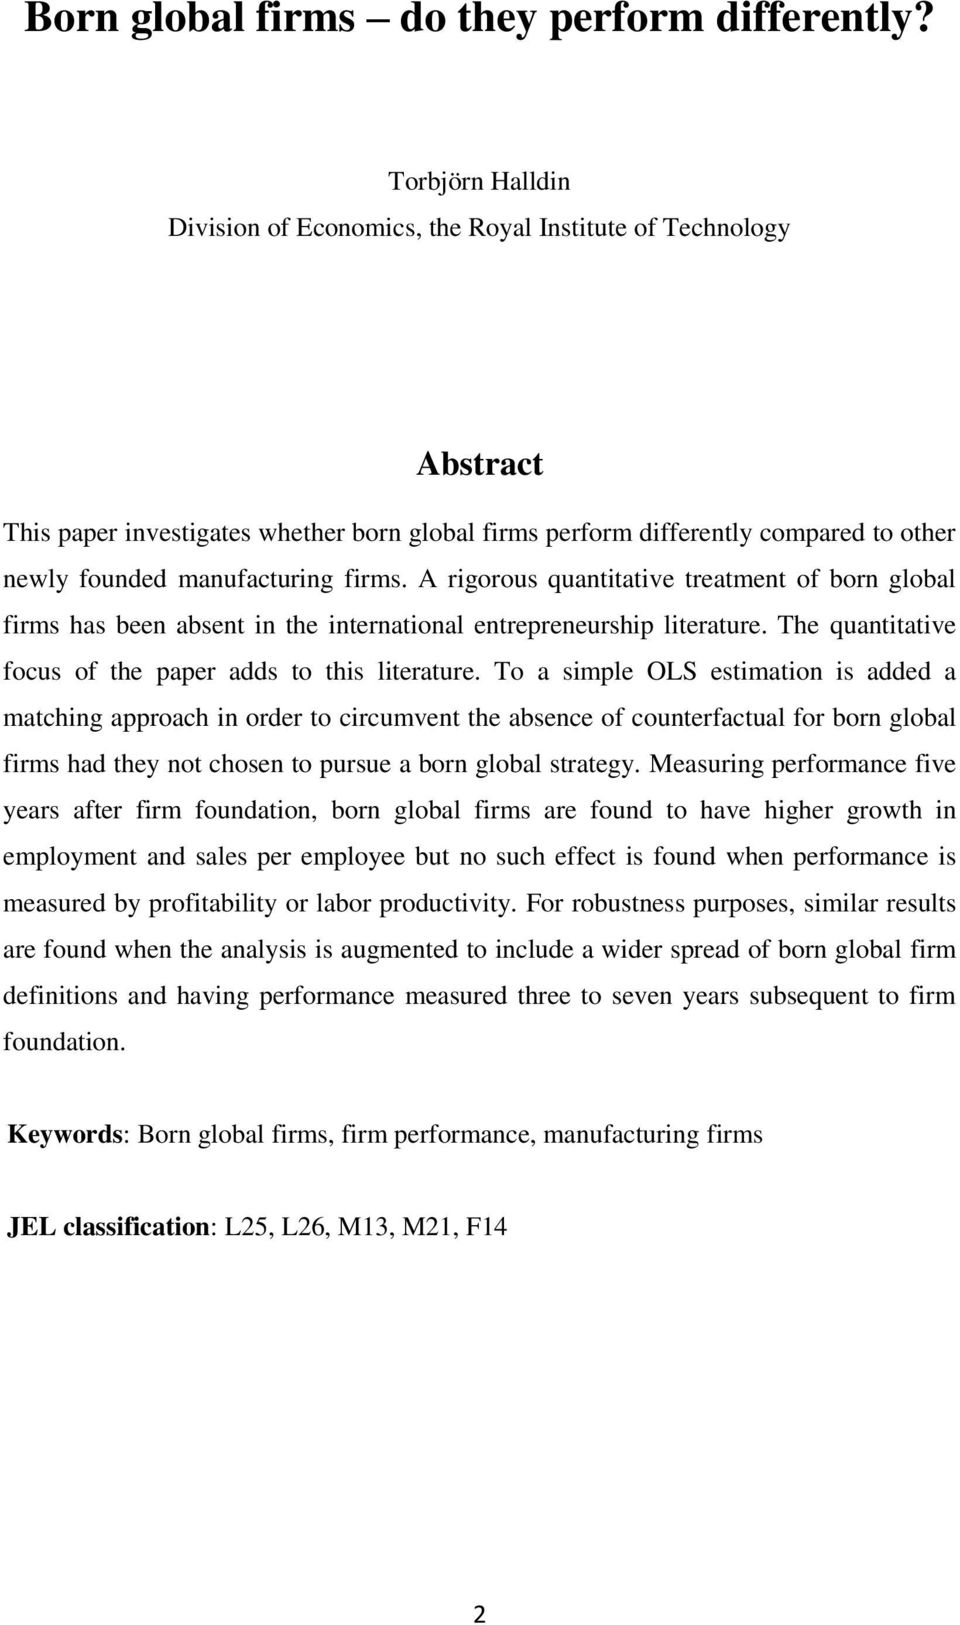 firms. A rigorous quantitative treatment of born global firms has been absent in the international entrepreneurship literature. The quantitative focus of the paper adds to this literature.